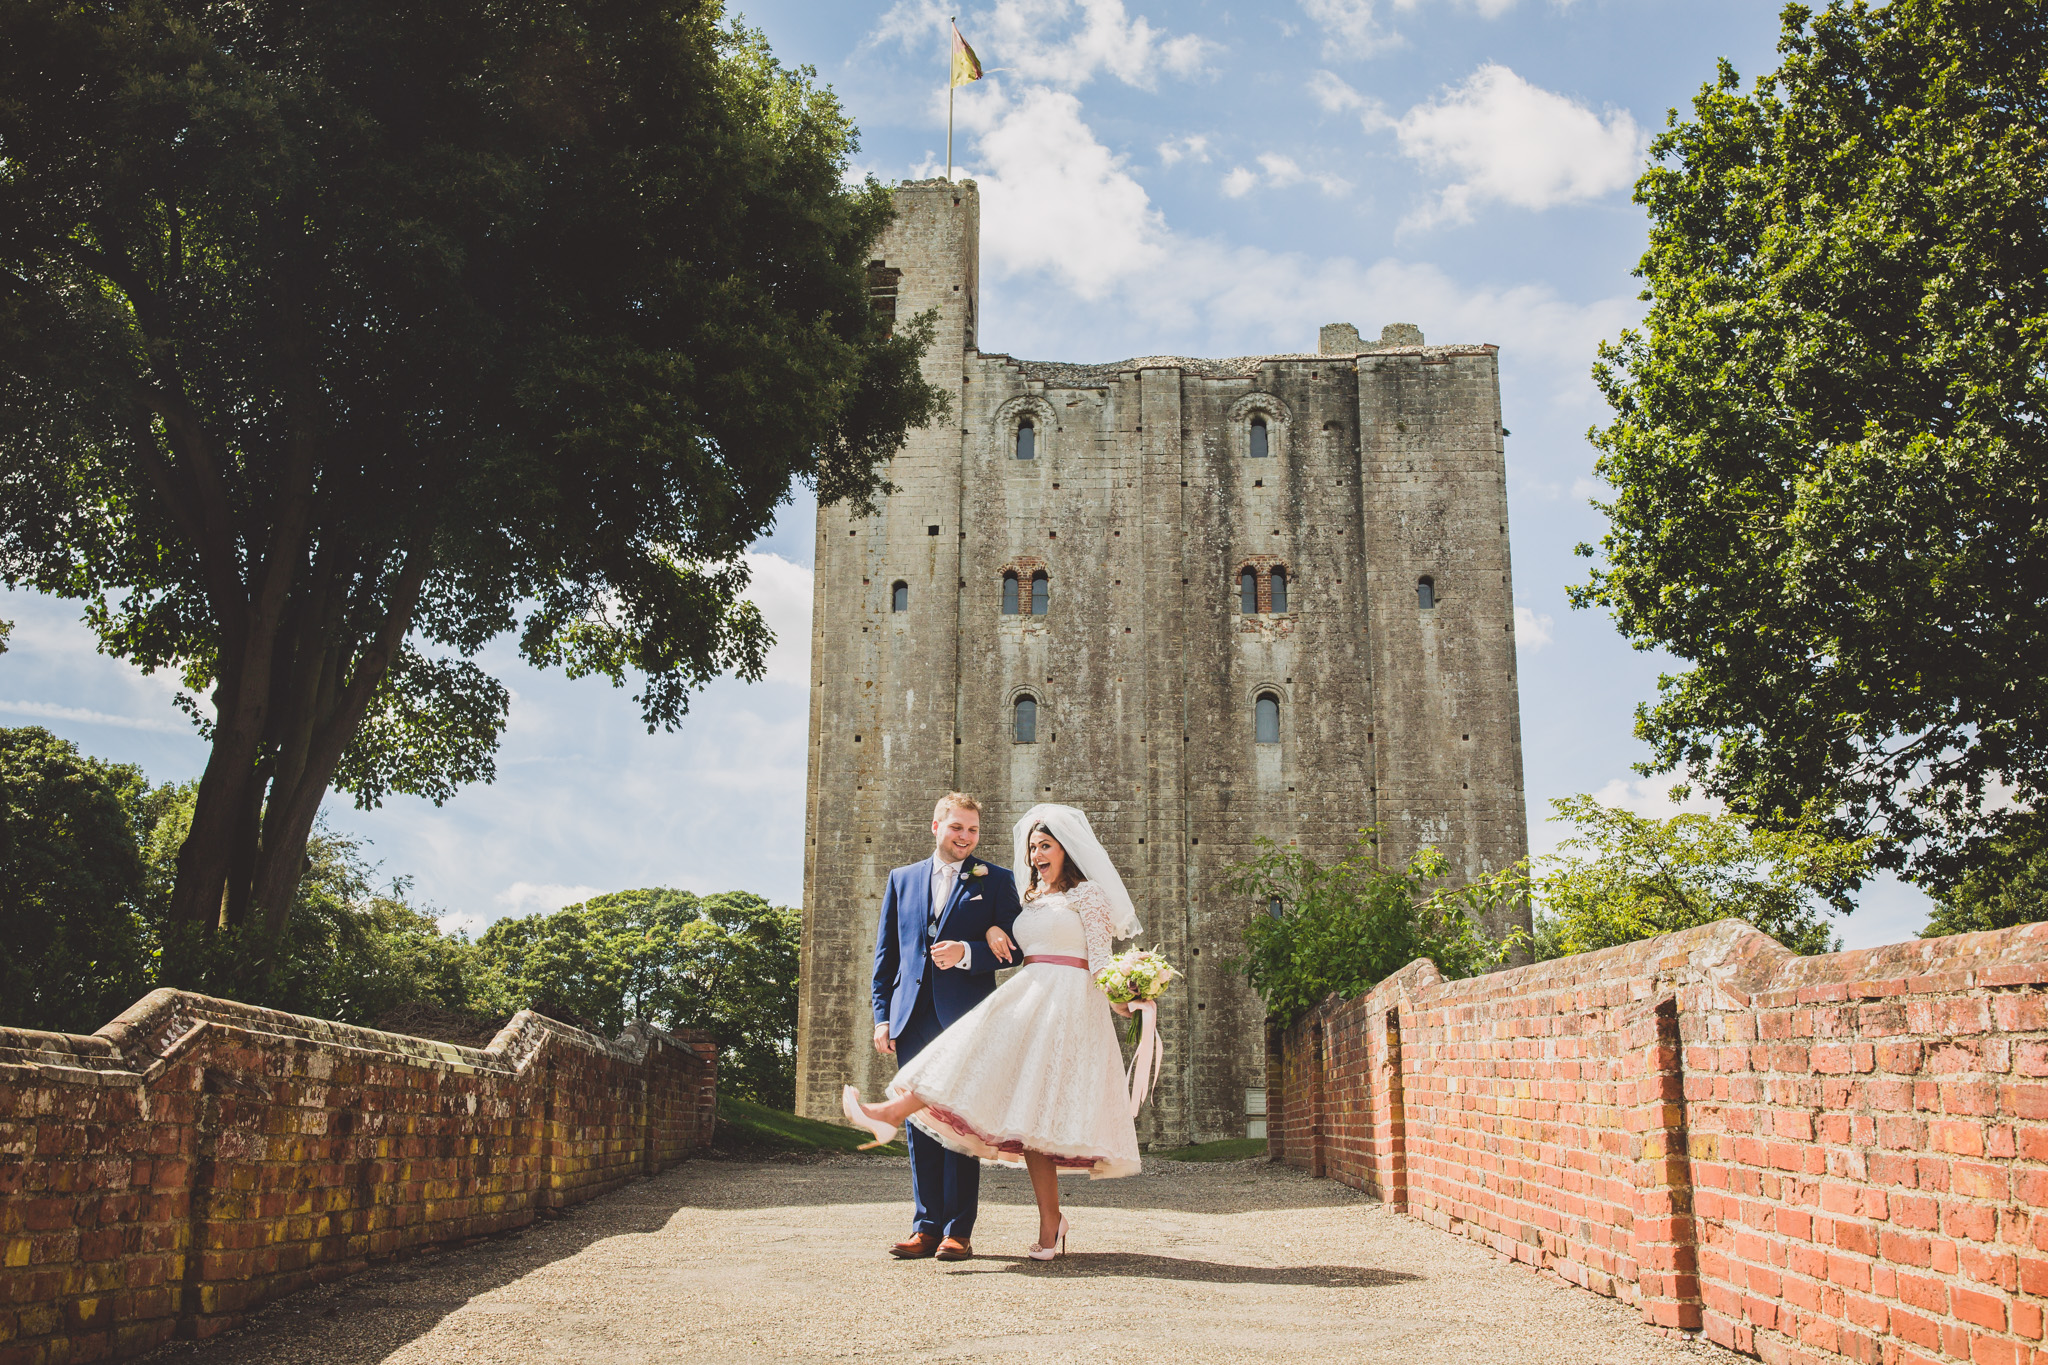 Hedingham Castle: Chantelle and George wedding photography